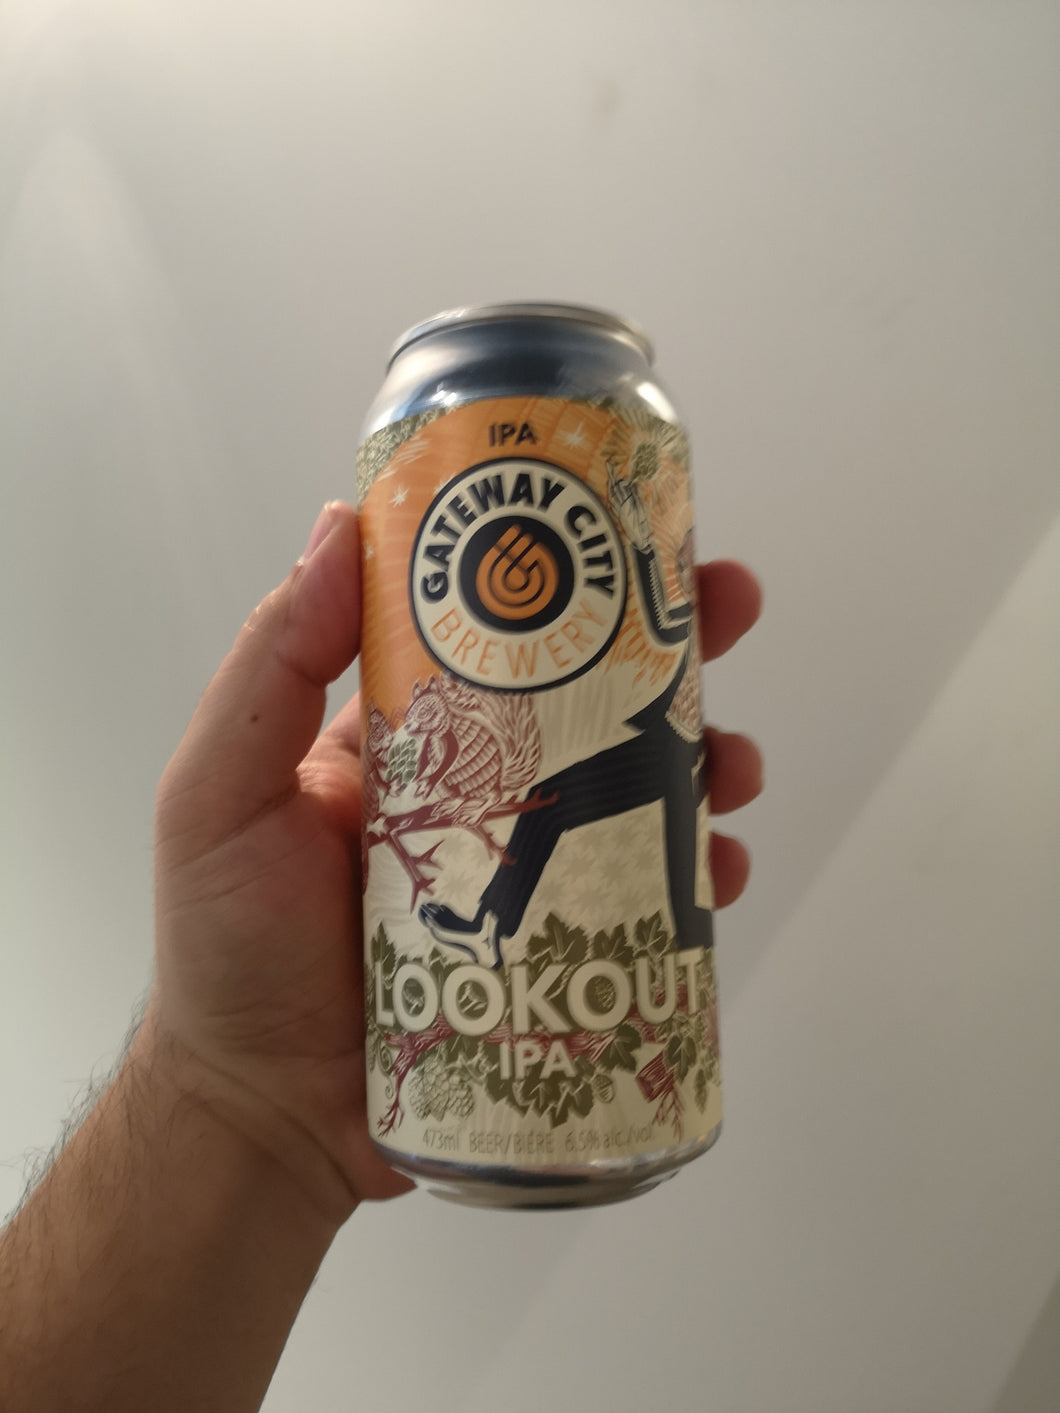 Lookout #3 - IPA - Gateway City